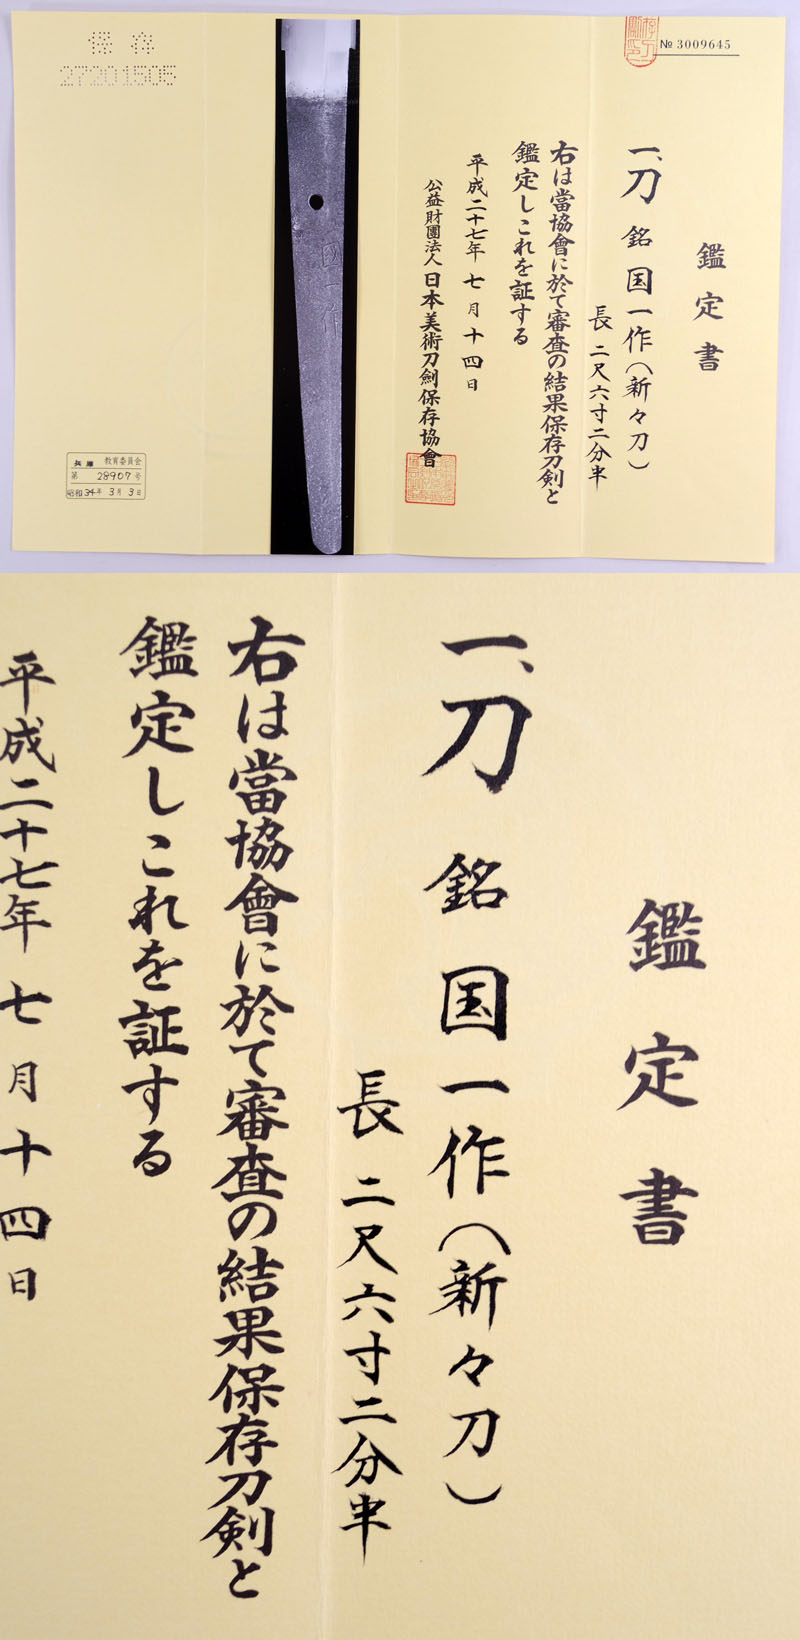 国一作 Picture of Certificate